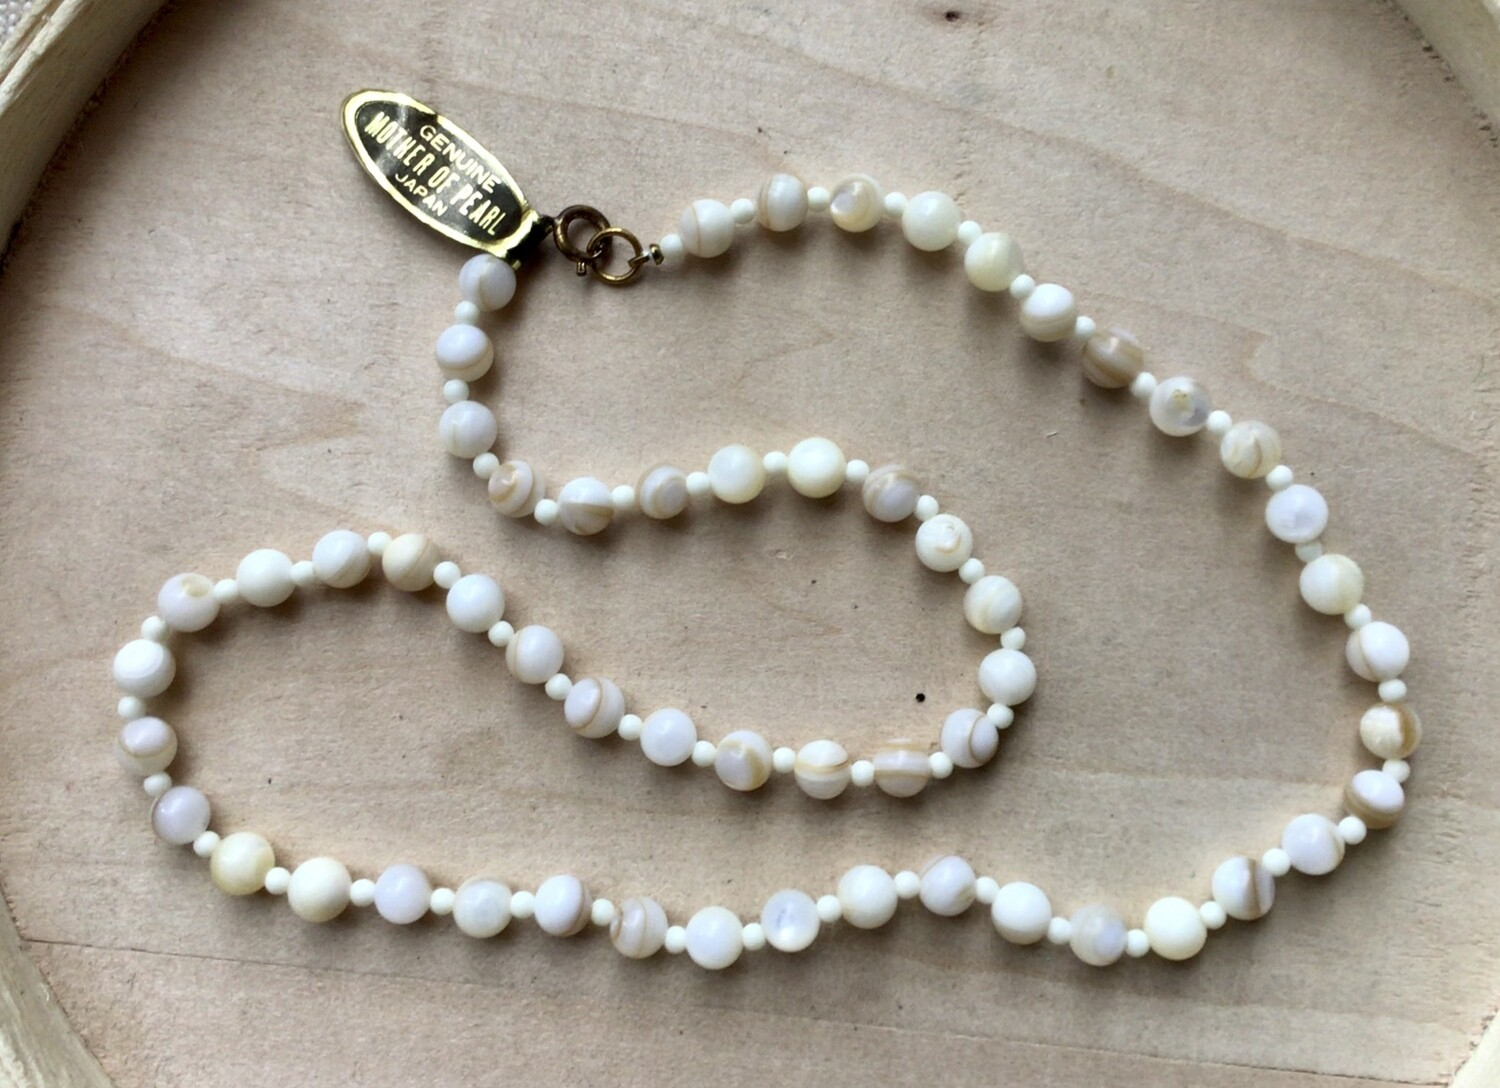 Necklace: Vintage Mother-of-Pearl